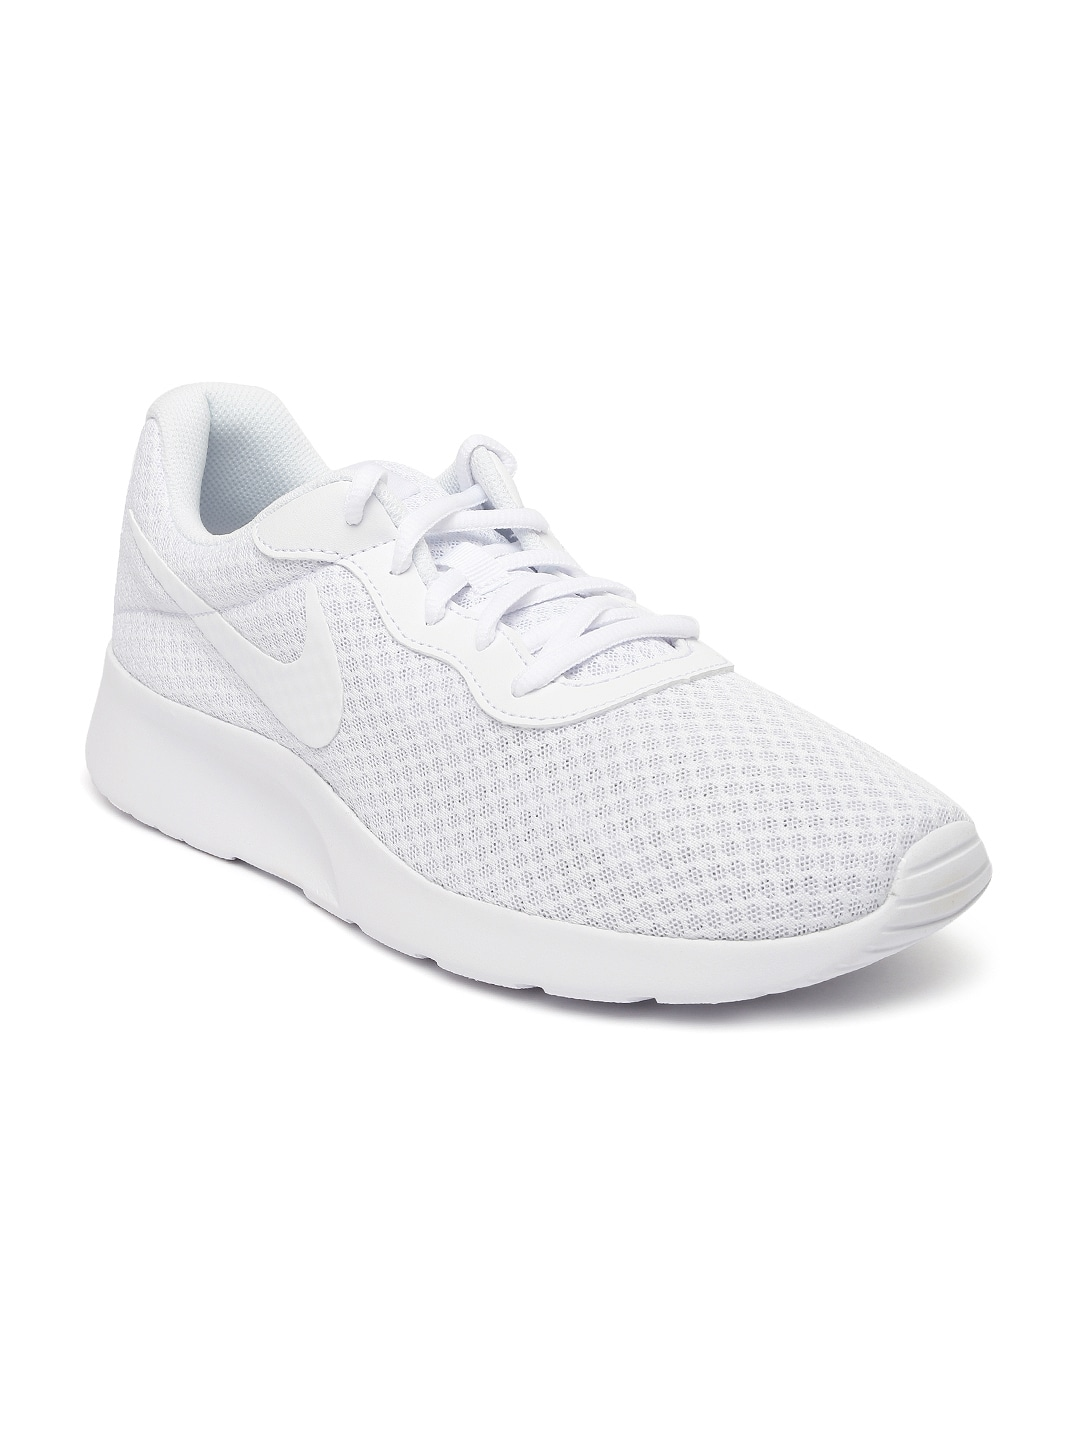 nike trainers men tanjun